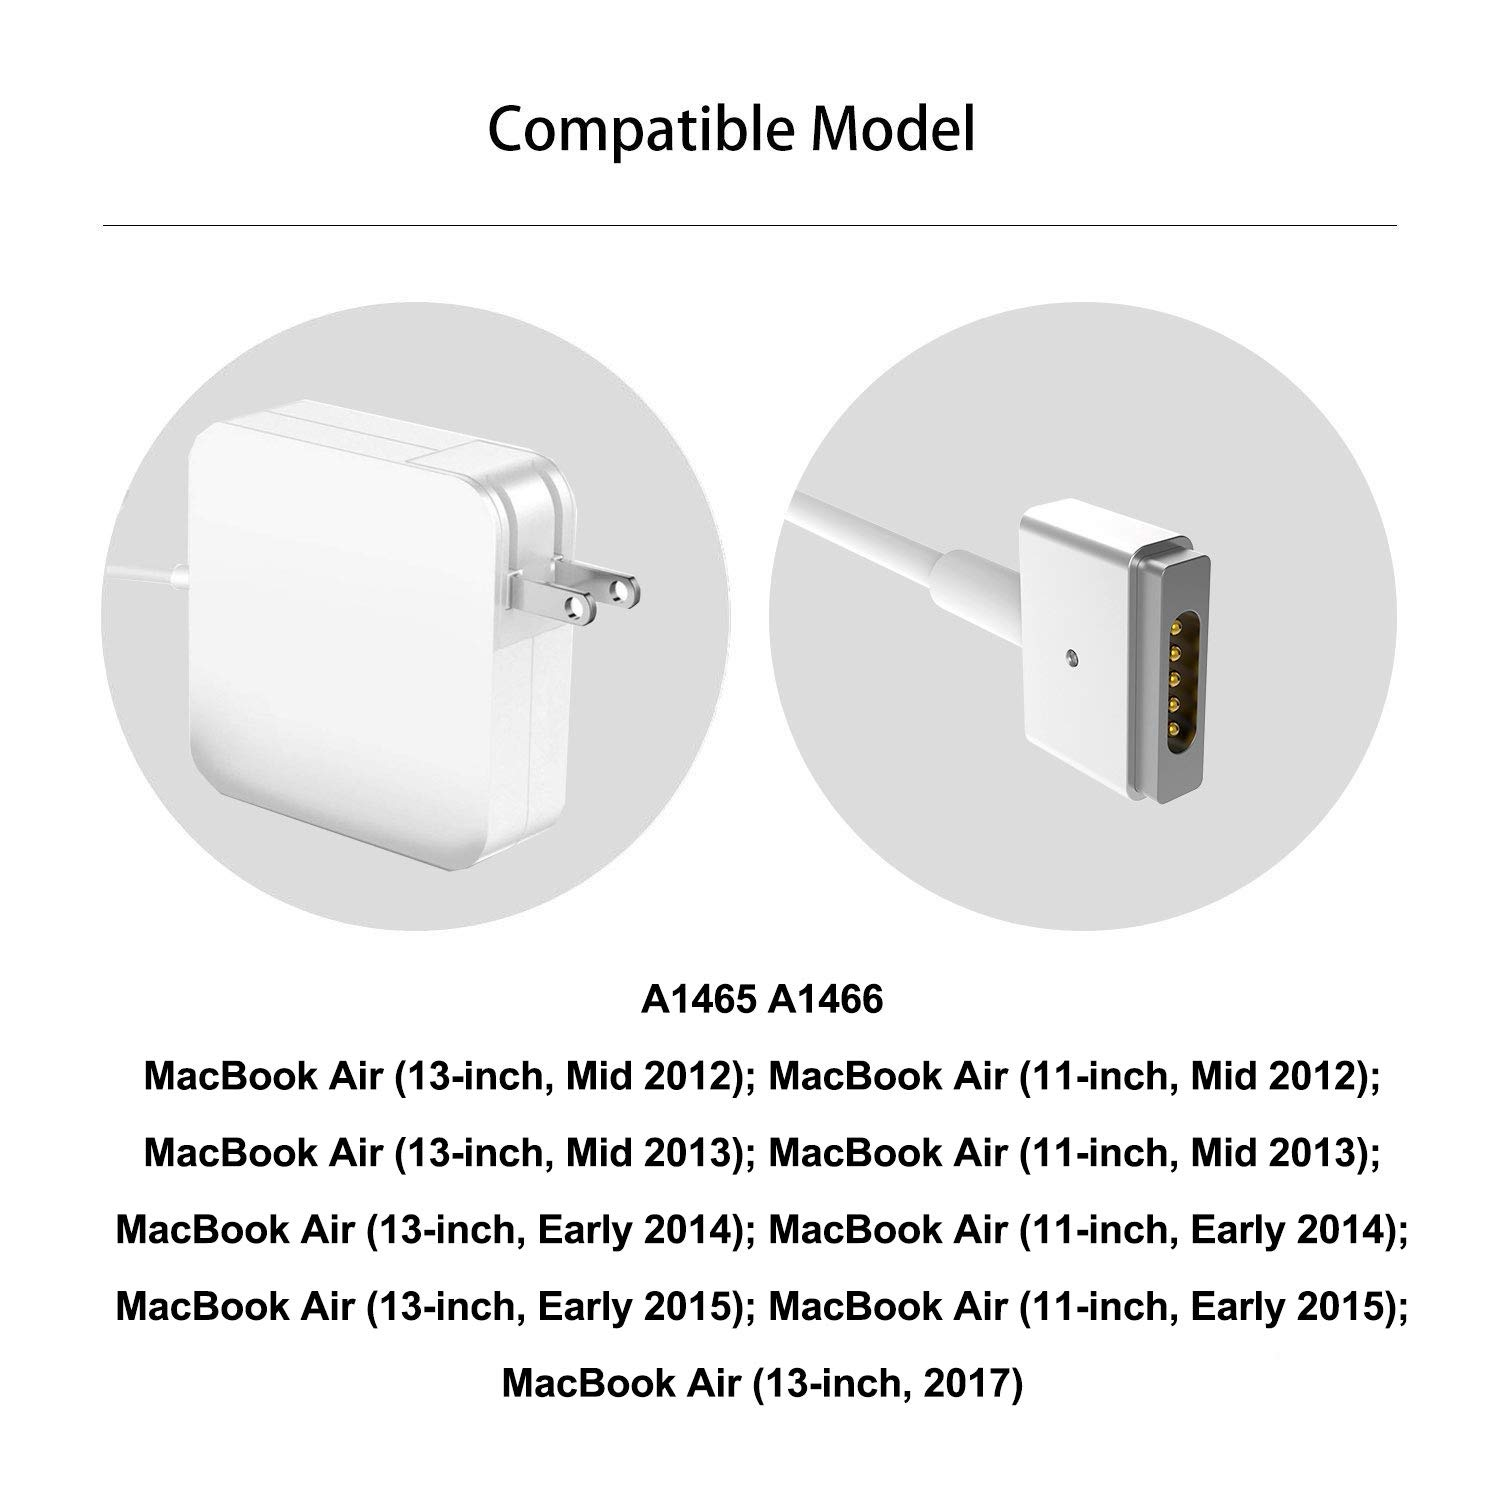 TrophyRak for MacBook Air Charger 45W MagSafe 2 T-Tip Adapter Charger for MacBook Air 11-inch and 13-inch After Mid 2012 by TrophyRak (Image #2)